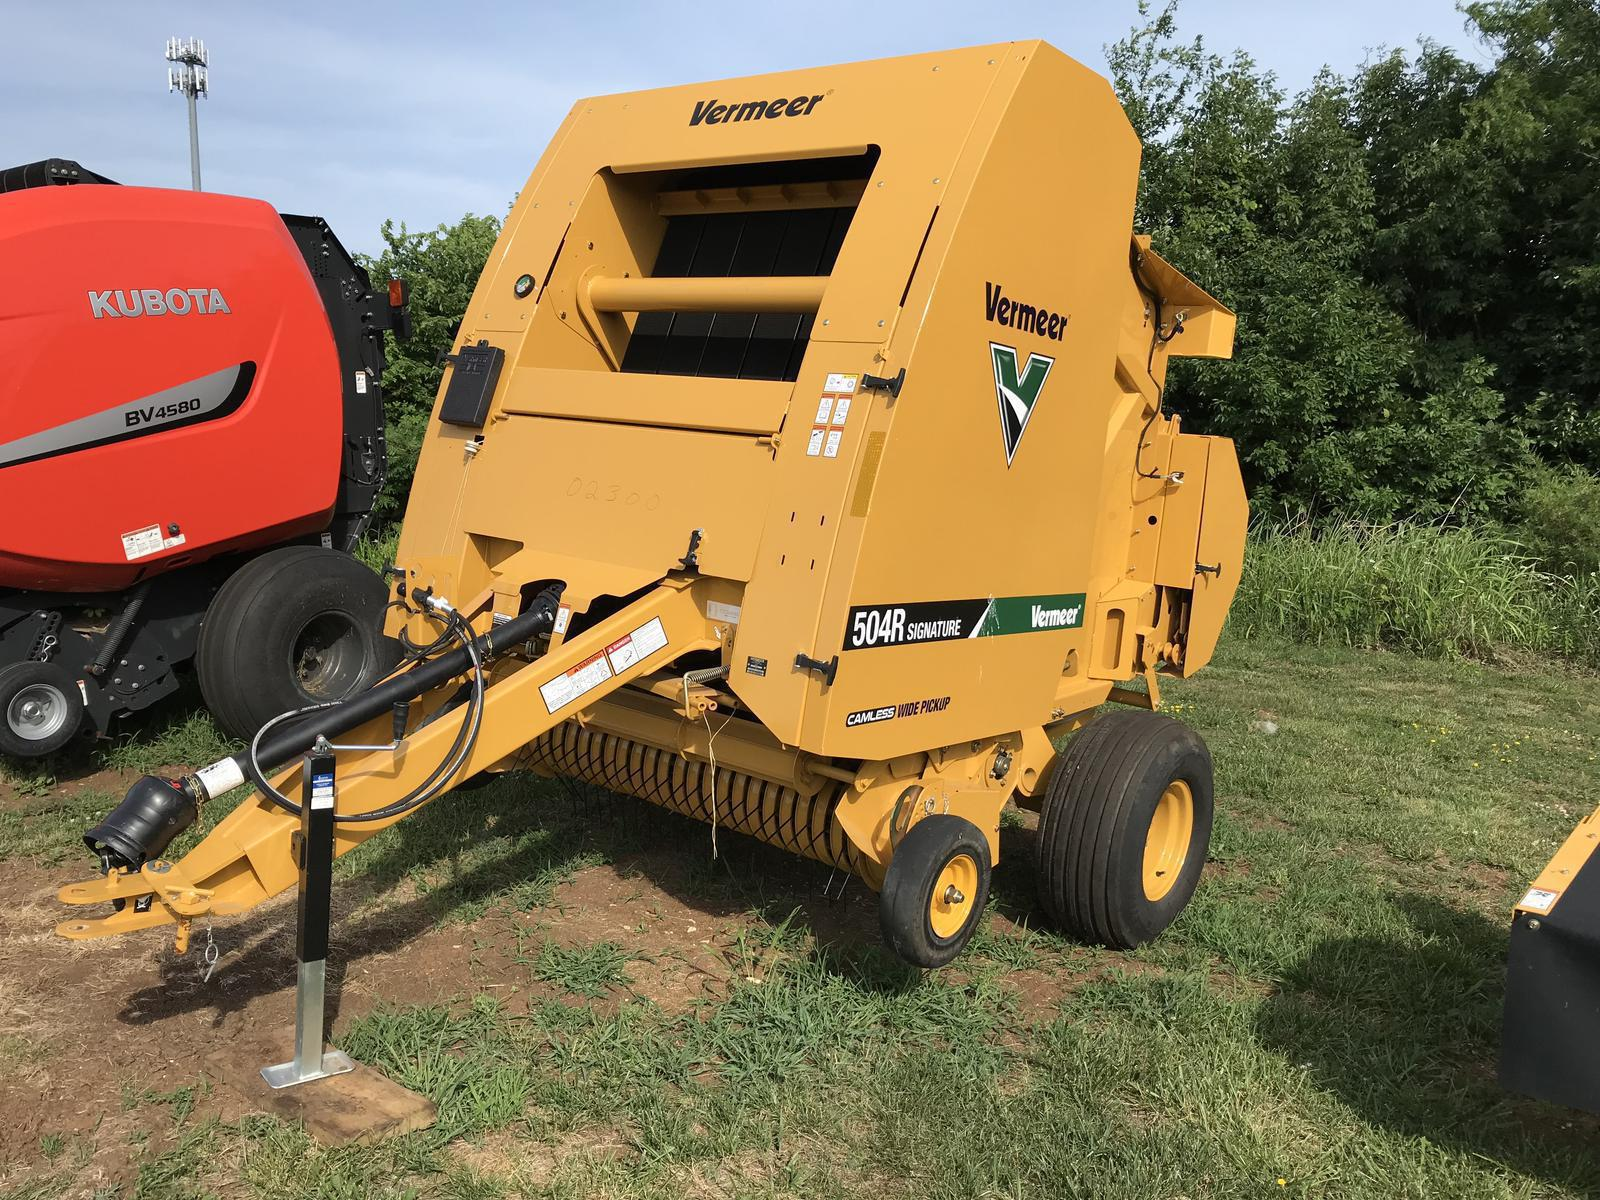 2019 Vermeer 504R Twine Net Ramp for sale in Louisburg, KS